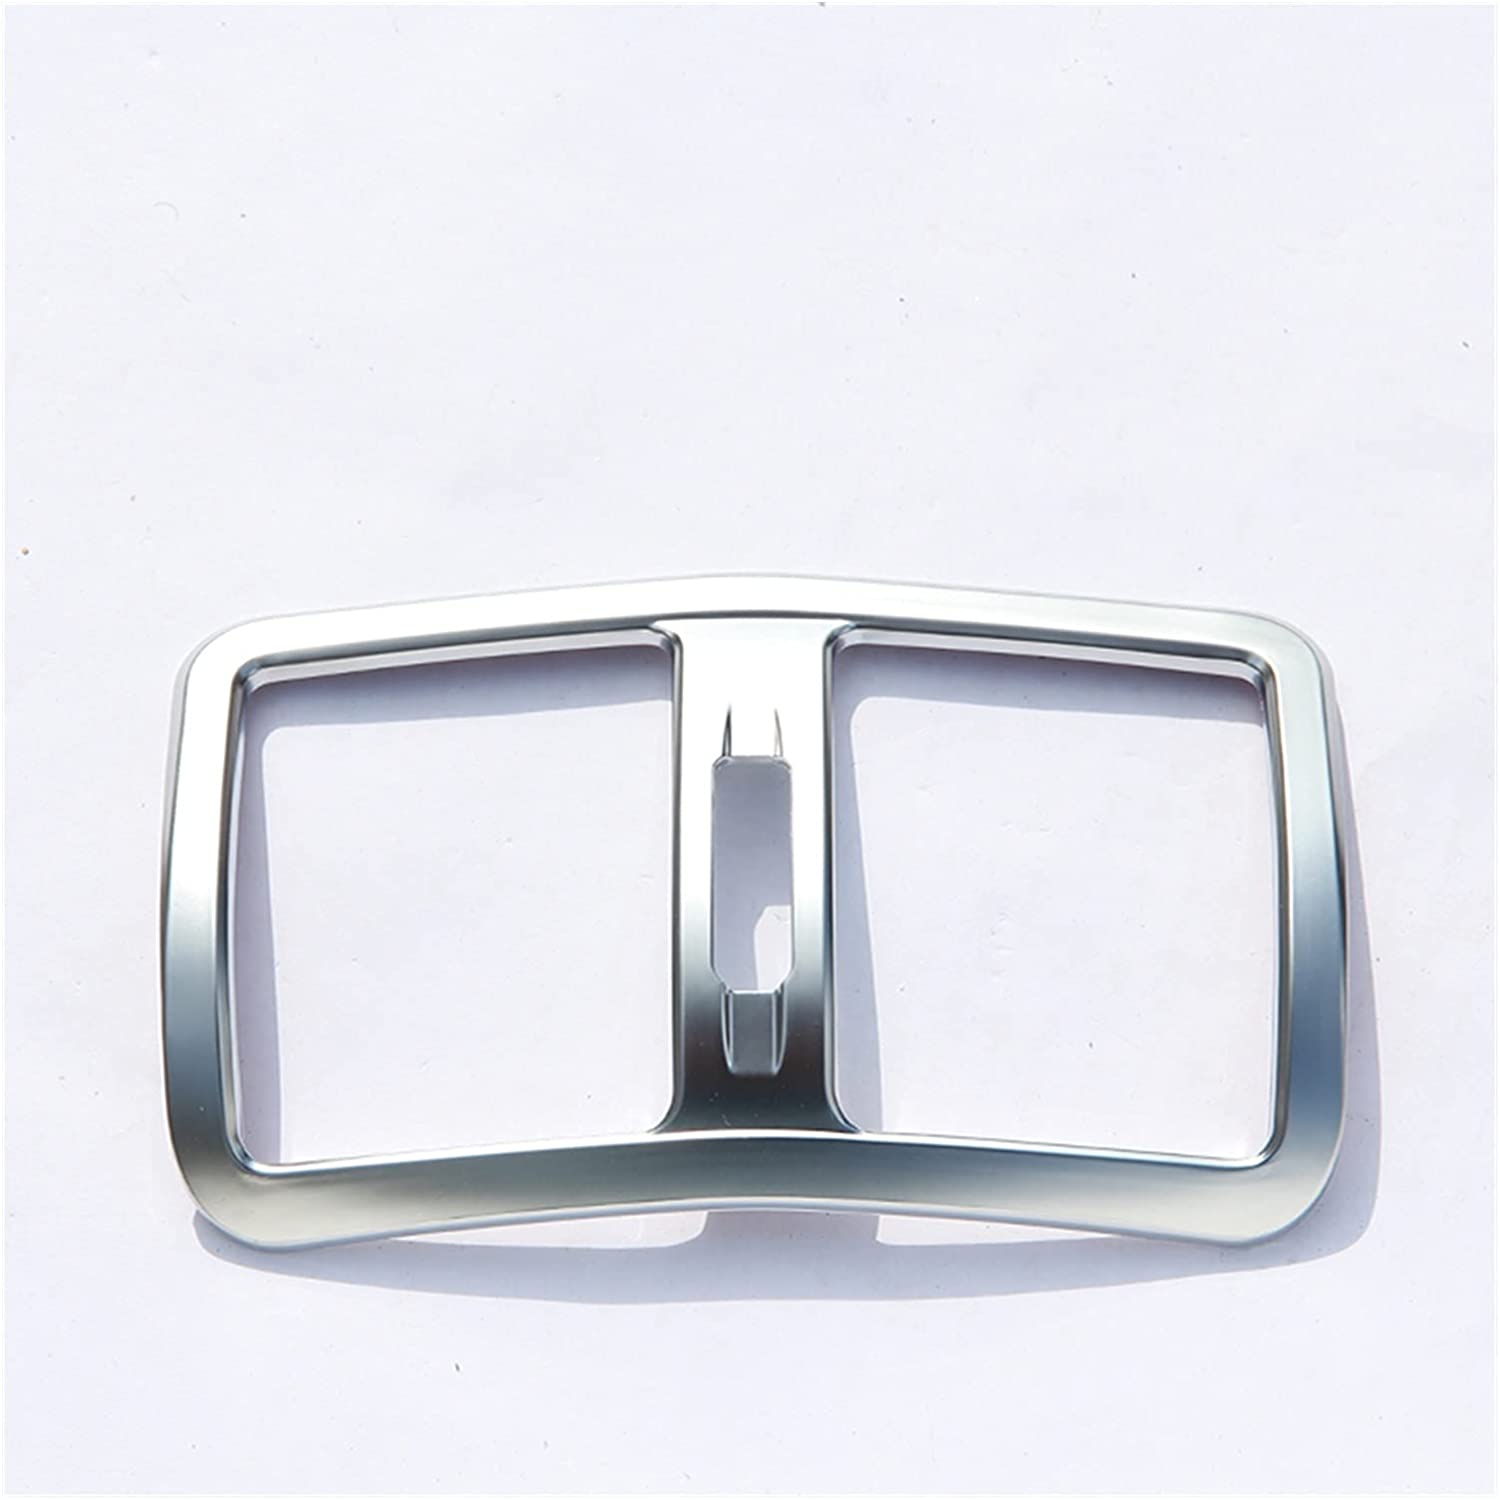 PINGPING Max 48% OFF Our shop most popular JLIANG Store Chrome Air Fi Cover Vent Trim Conditioning